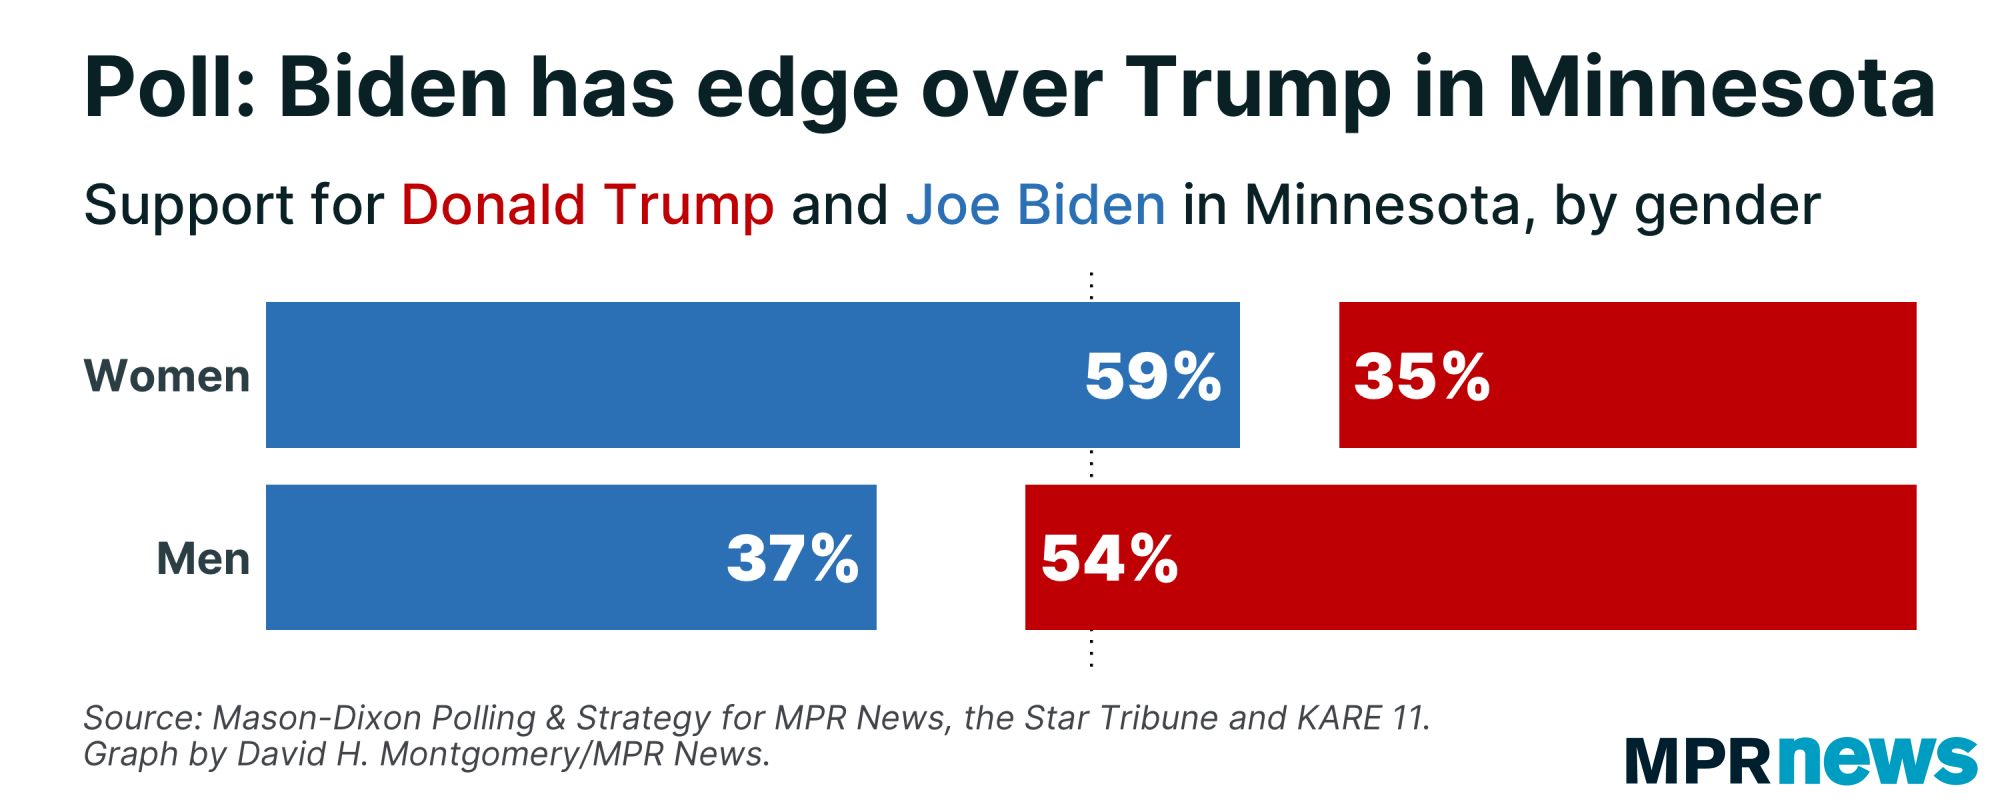 Support for Trump and Biden in Minnesota, by gender